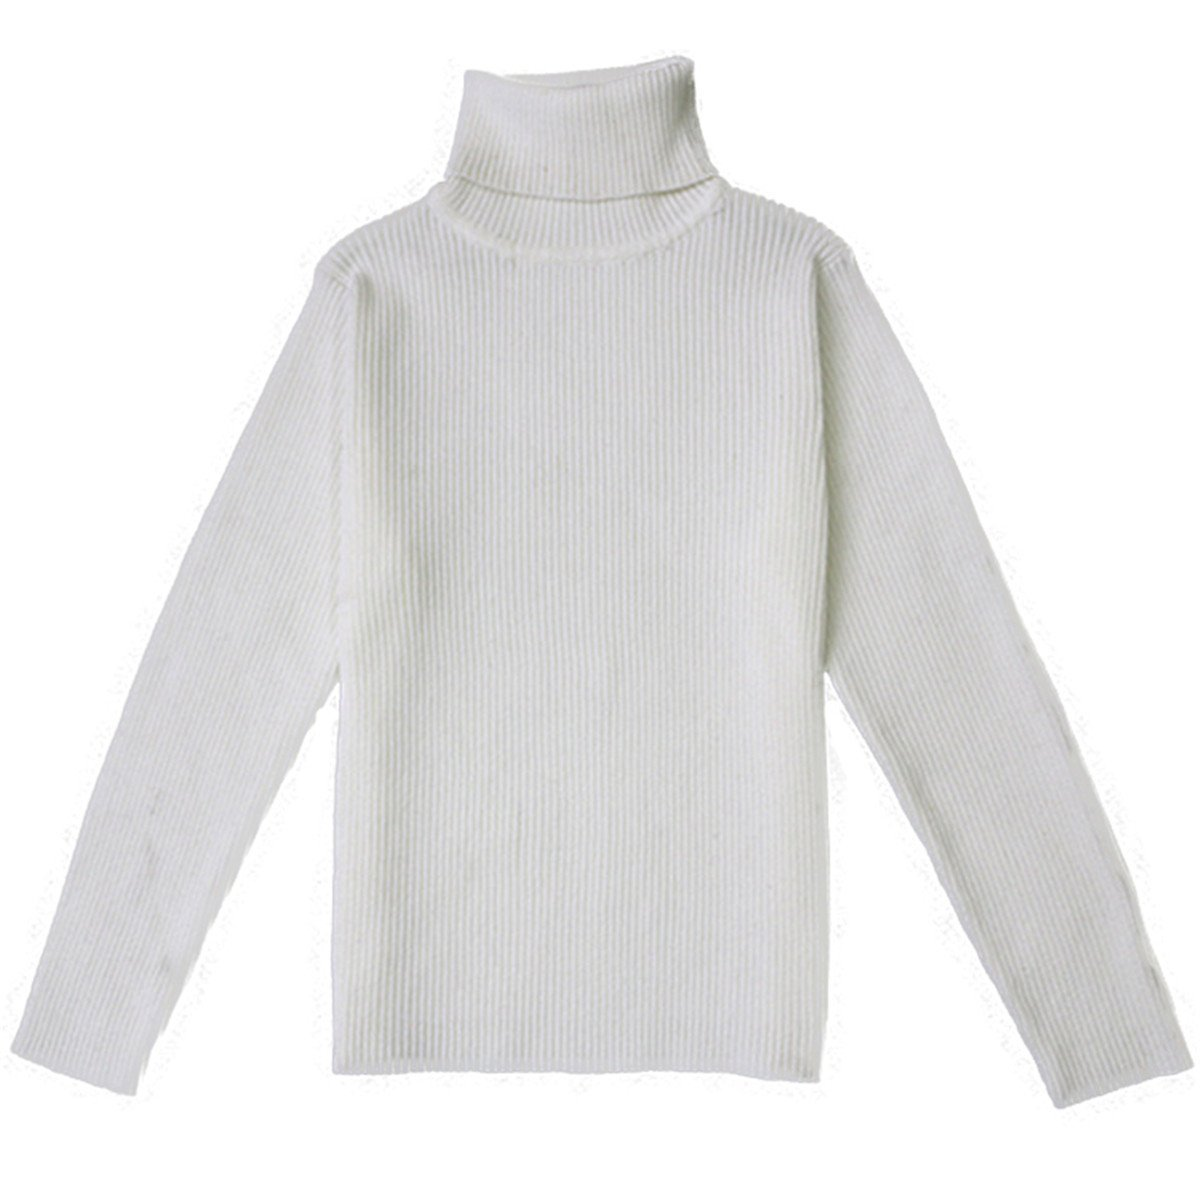 Little Baby Turtleneck Long Sleeve Sweater Basic Solid Fine Knit Warm Sweatshirt Pullover Base Tops (2-3 Years, White)